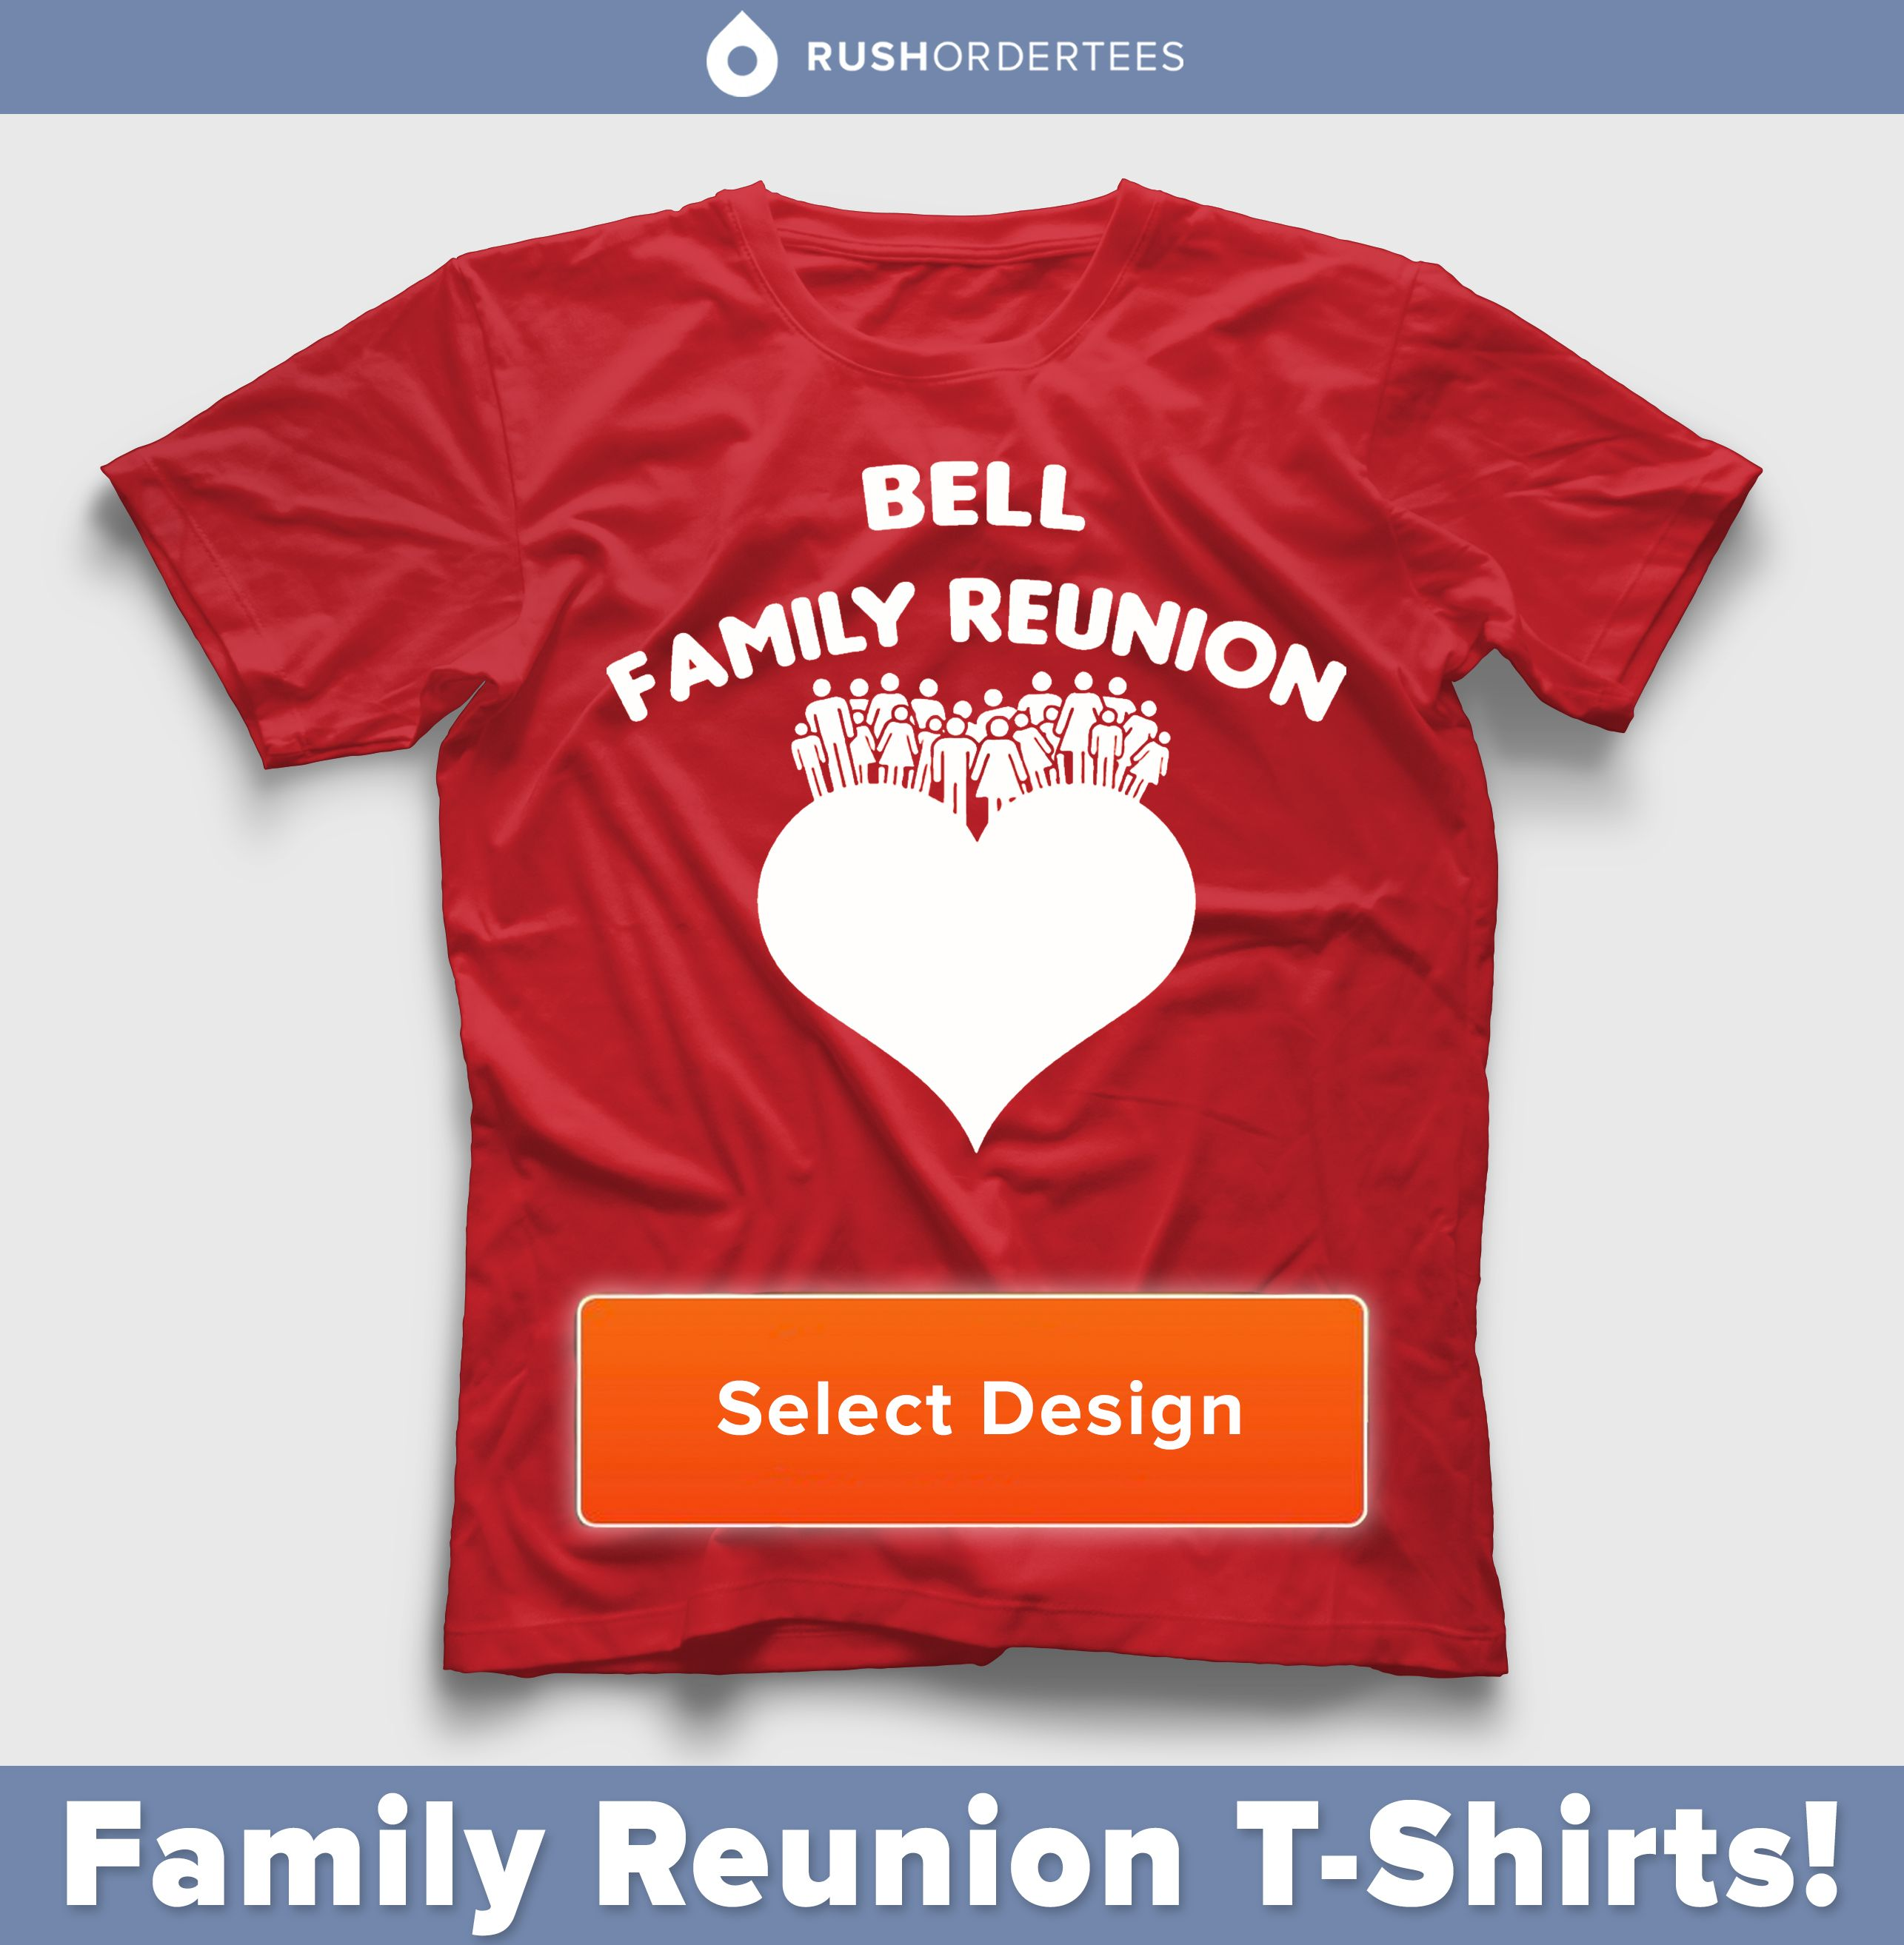 Superior Family Reunion Custom T Shirt Design Idea! We Have Plenty Of Templates To  Select From Our Website! Www.rushordertees.com